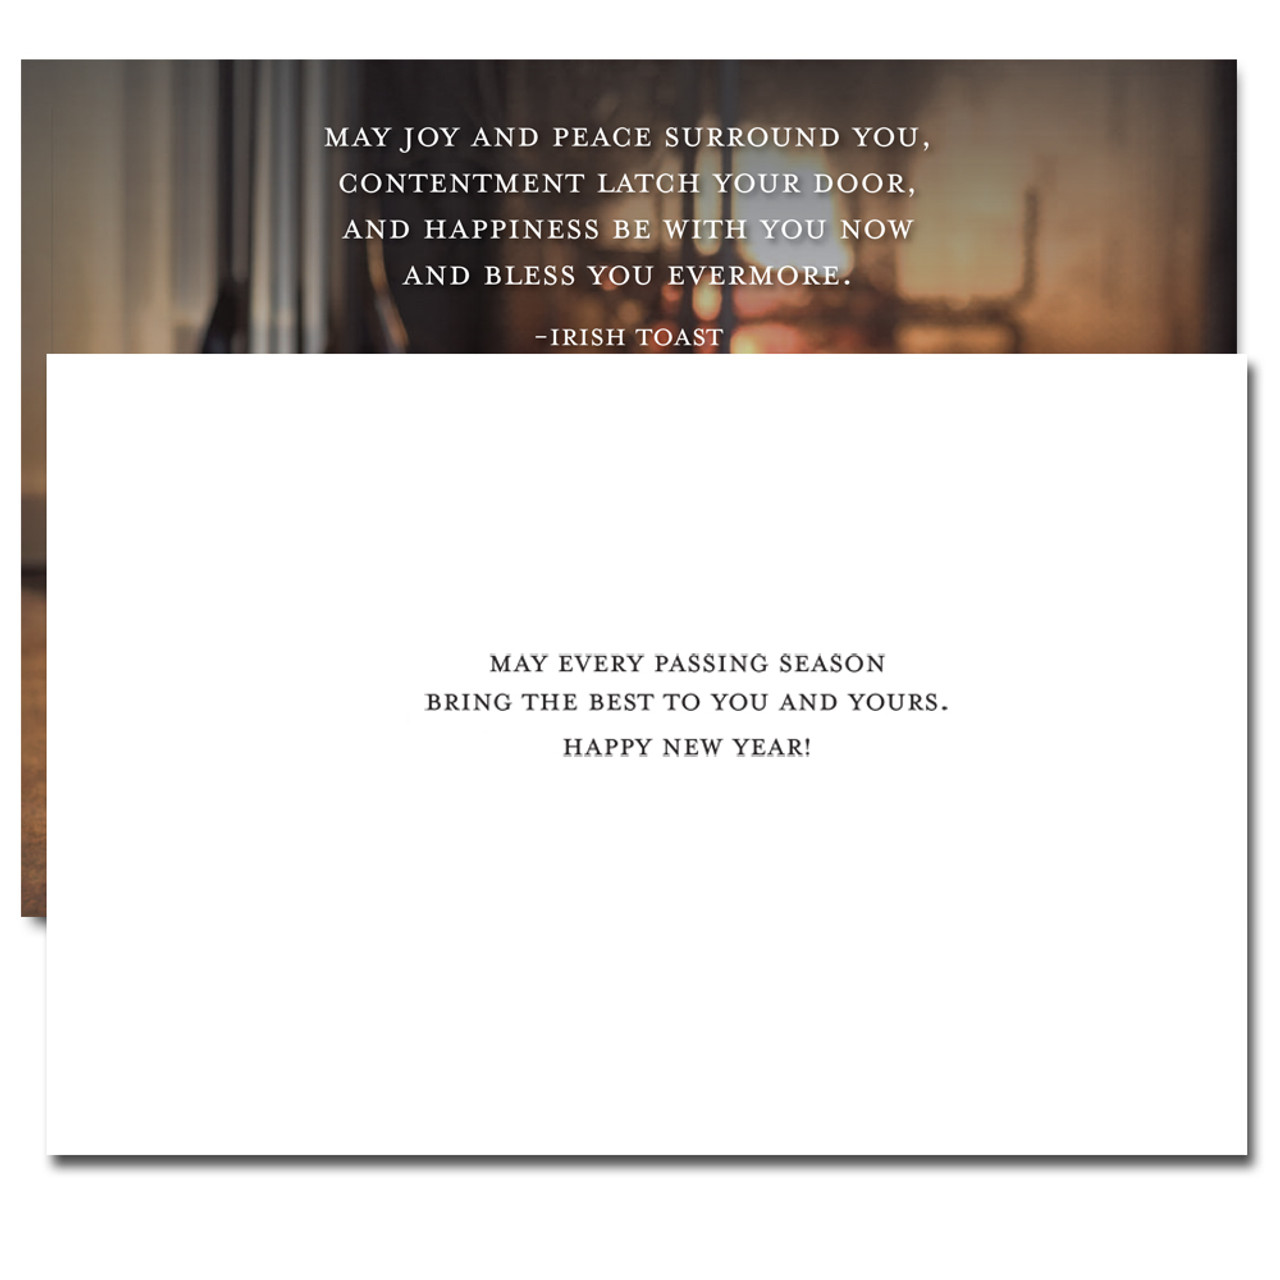 Joy and Peace New Year's Card: inside reads, May every passing season bring the best to you and yours. Happy New Year!